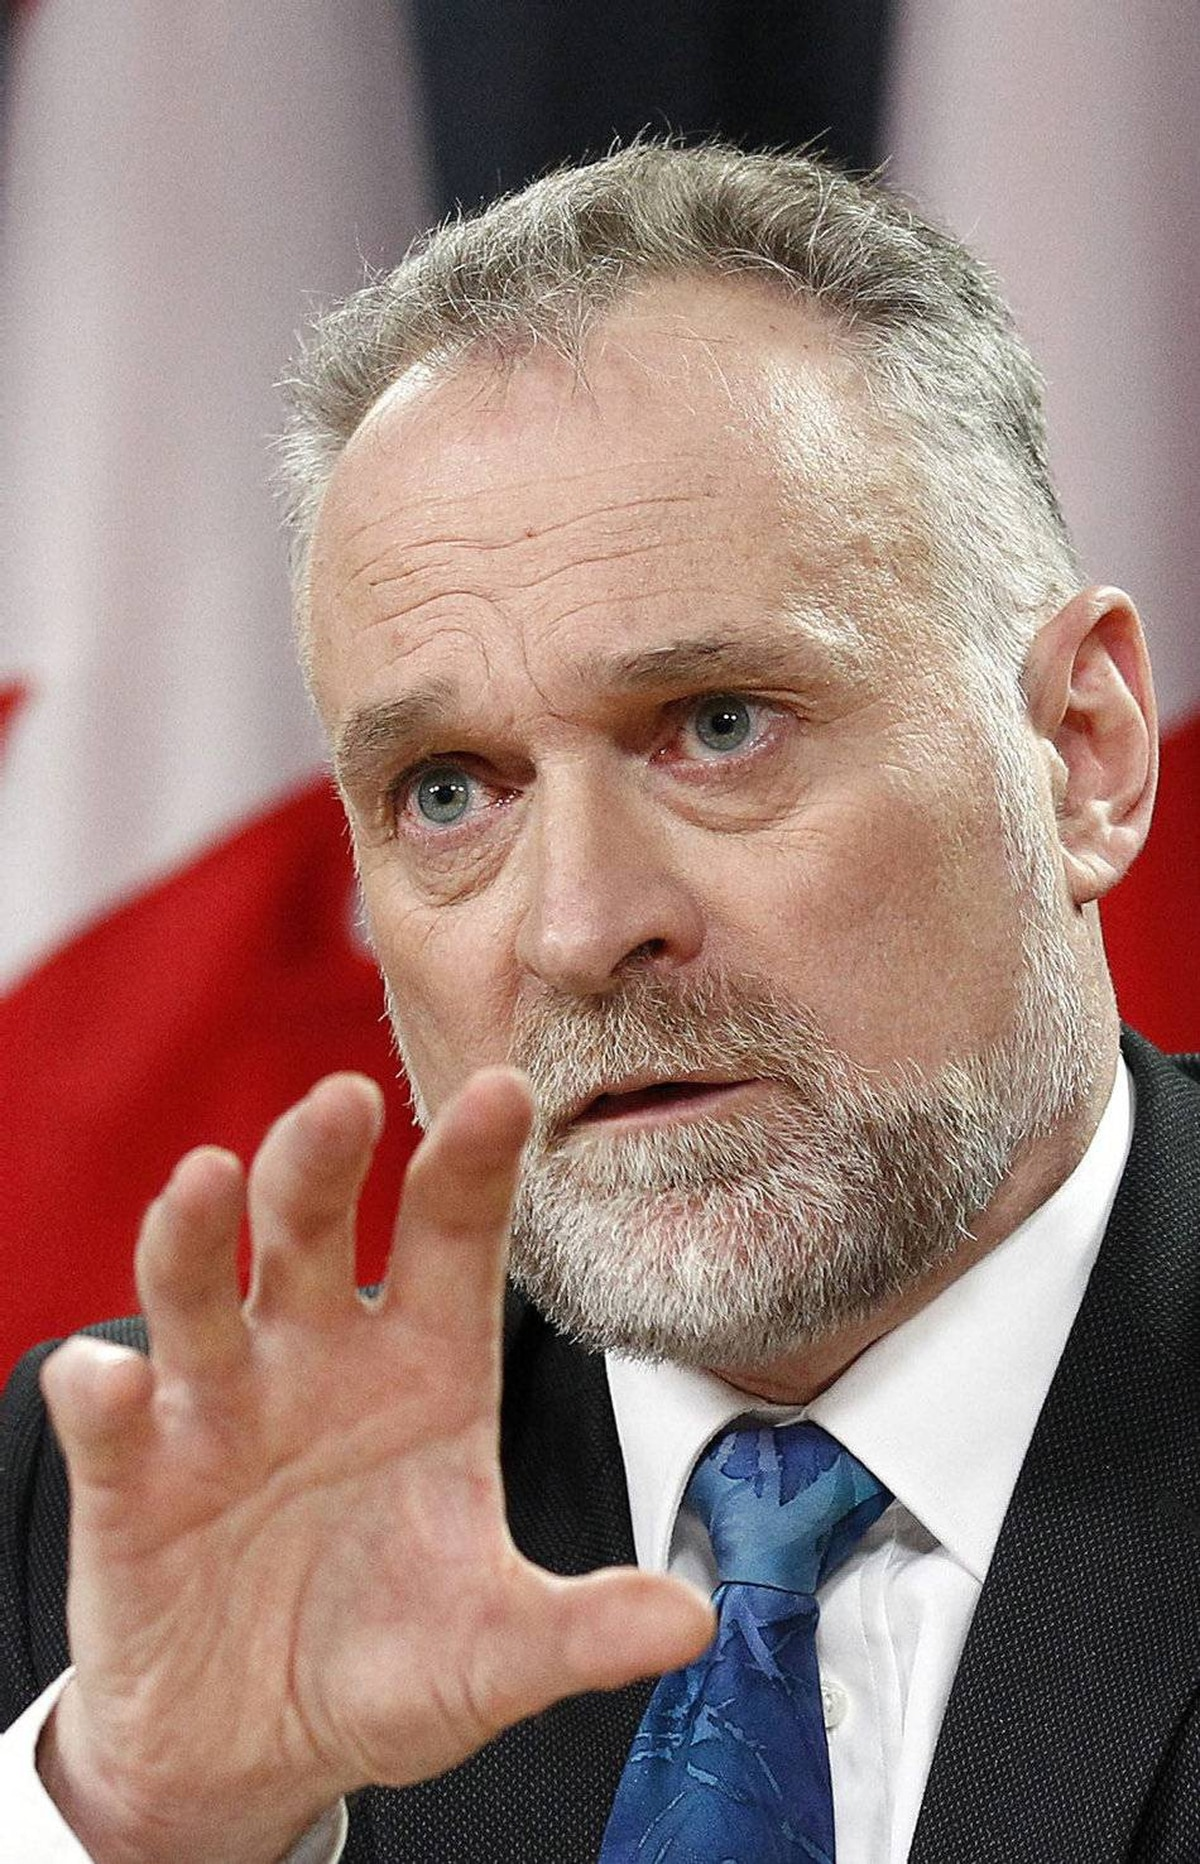 Michael Ferguson is Auditor-General of Canada. Established in 1868, the office has a budget of $102-million and 633 staff. His hot file: the F-35 fighter-jet purchase.